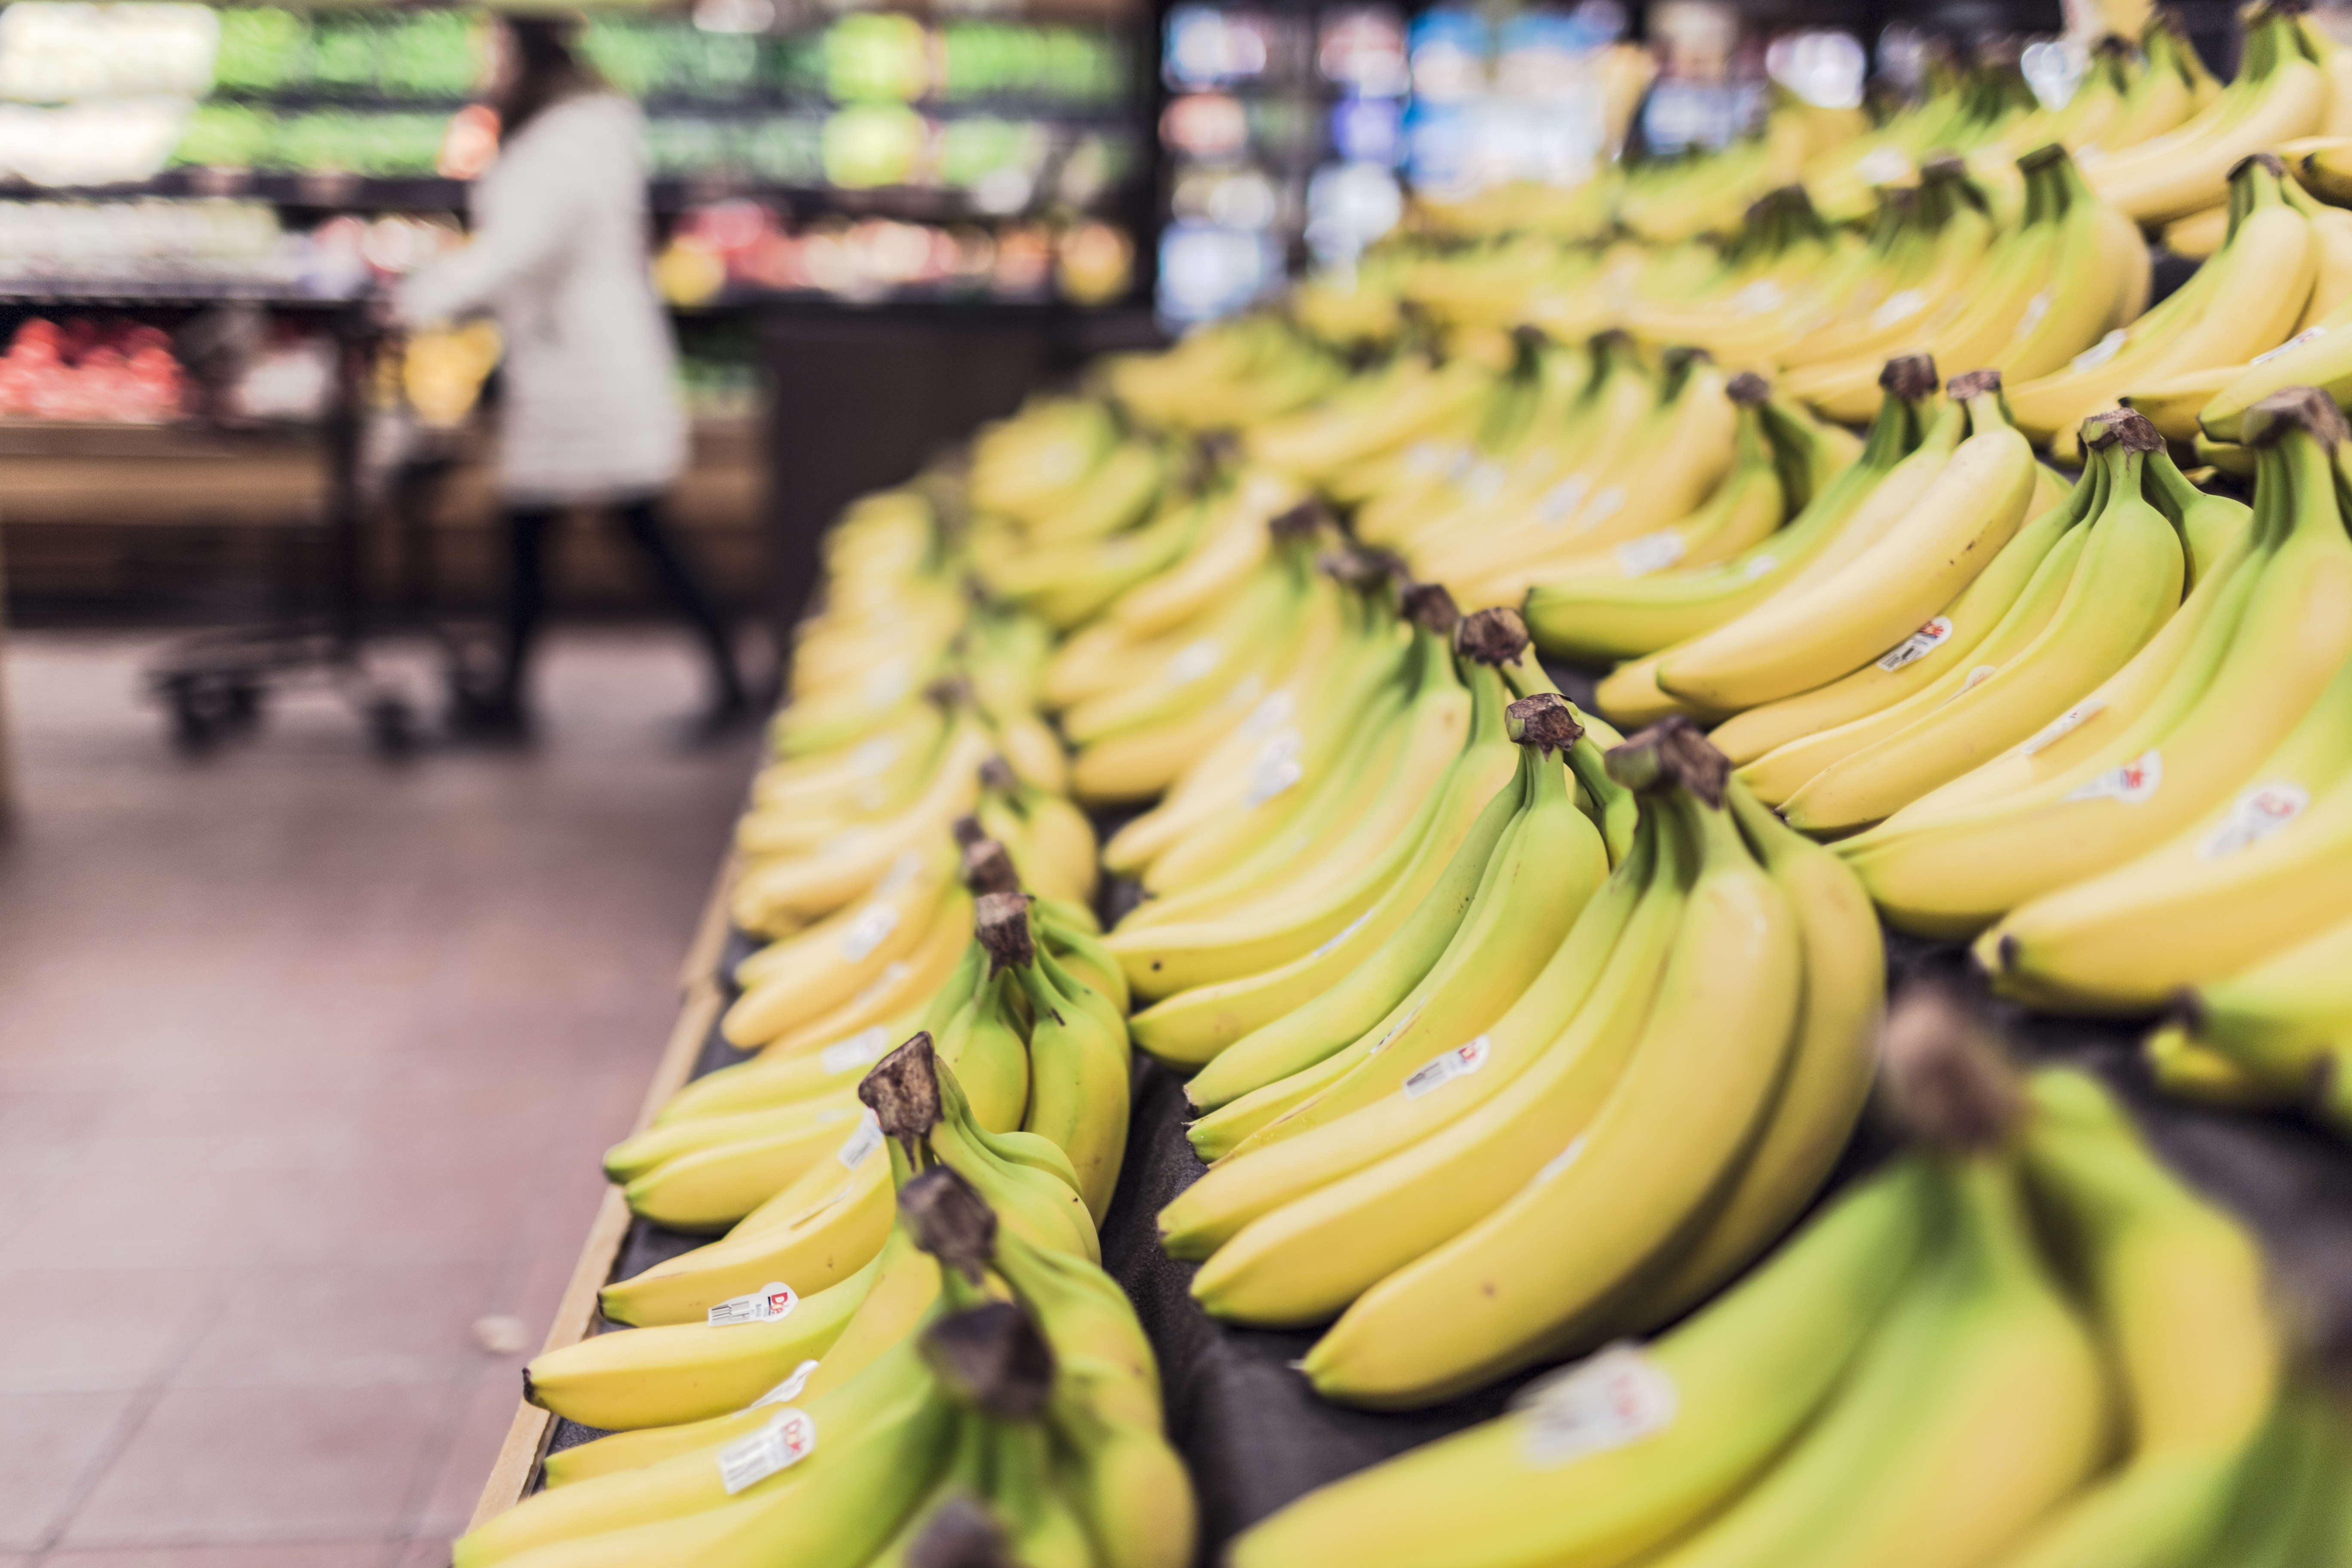 Vegan Shopping Tips which Will Make Your Life Easier